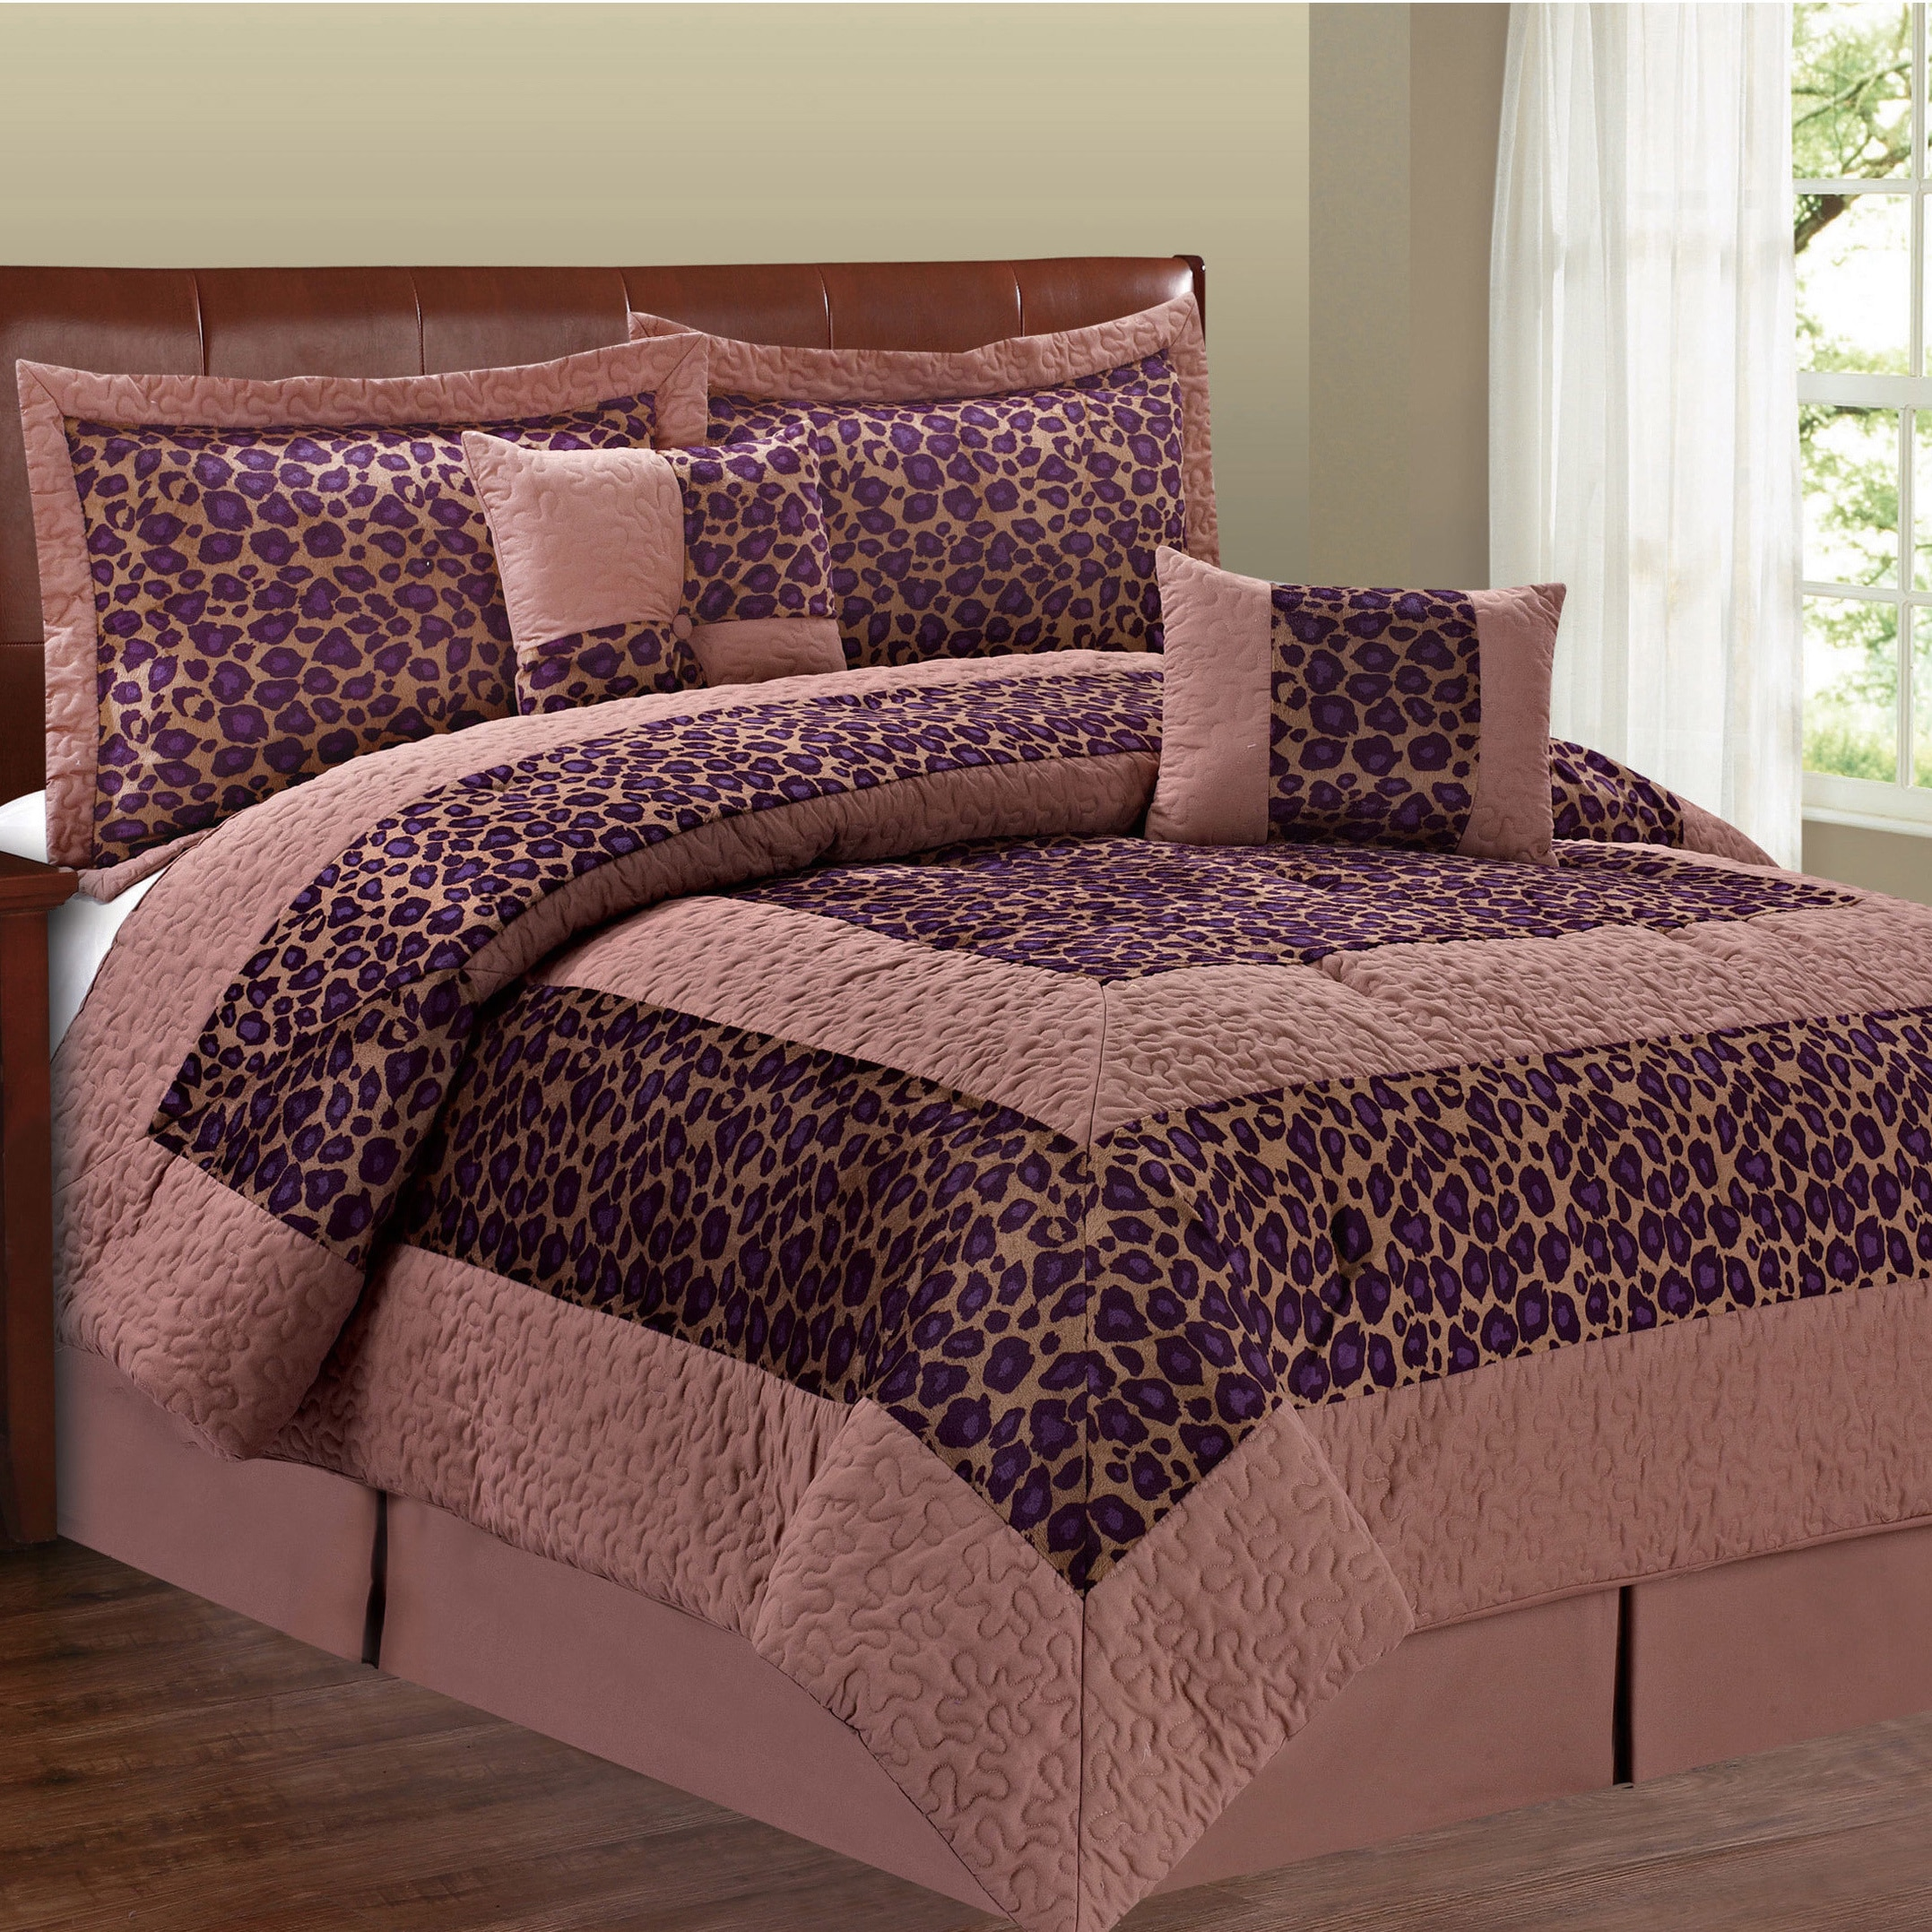 BNF Home Serenta Cheetah Design 6-piece Comforter Set